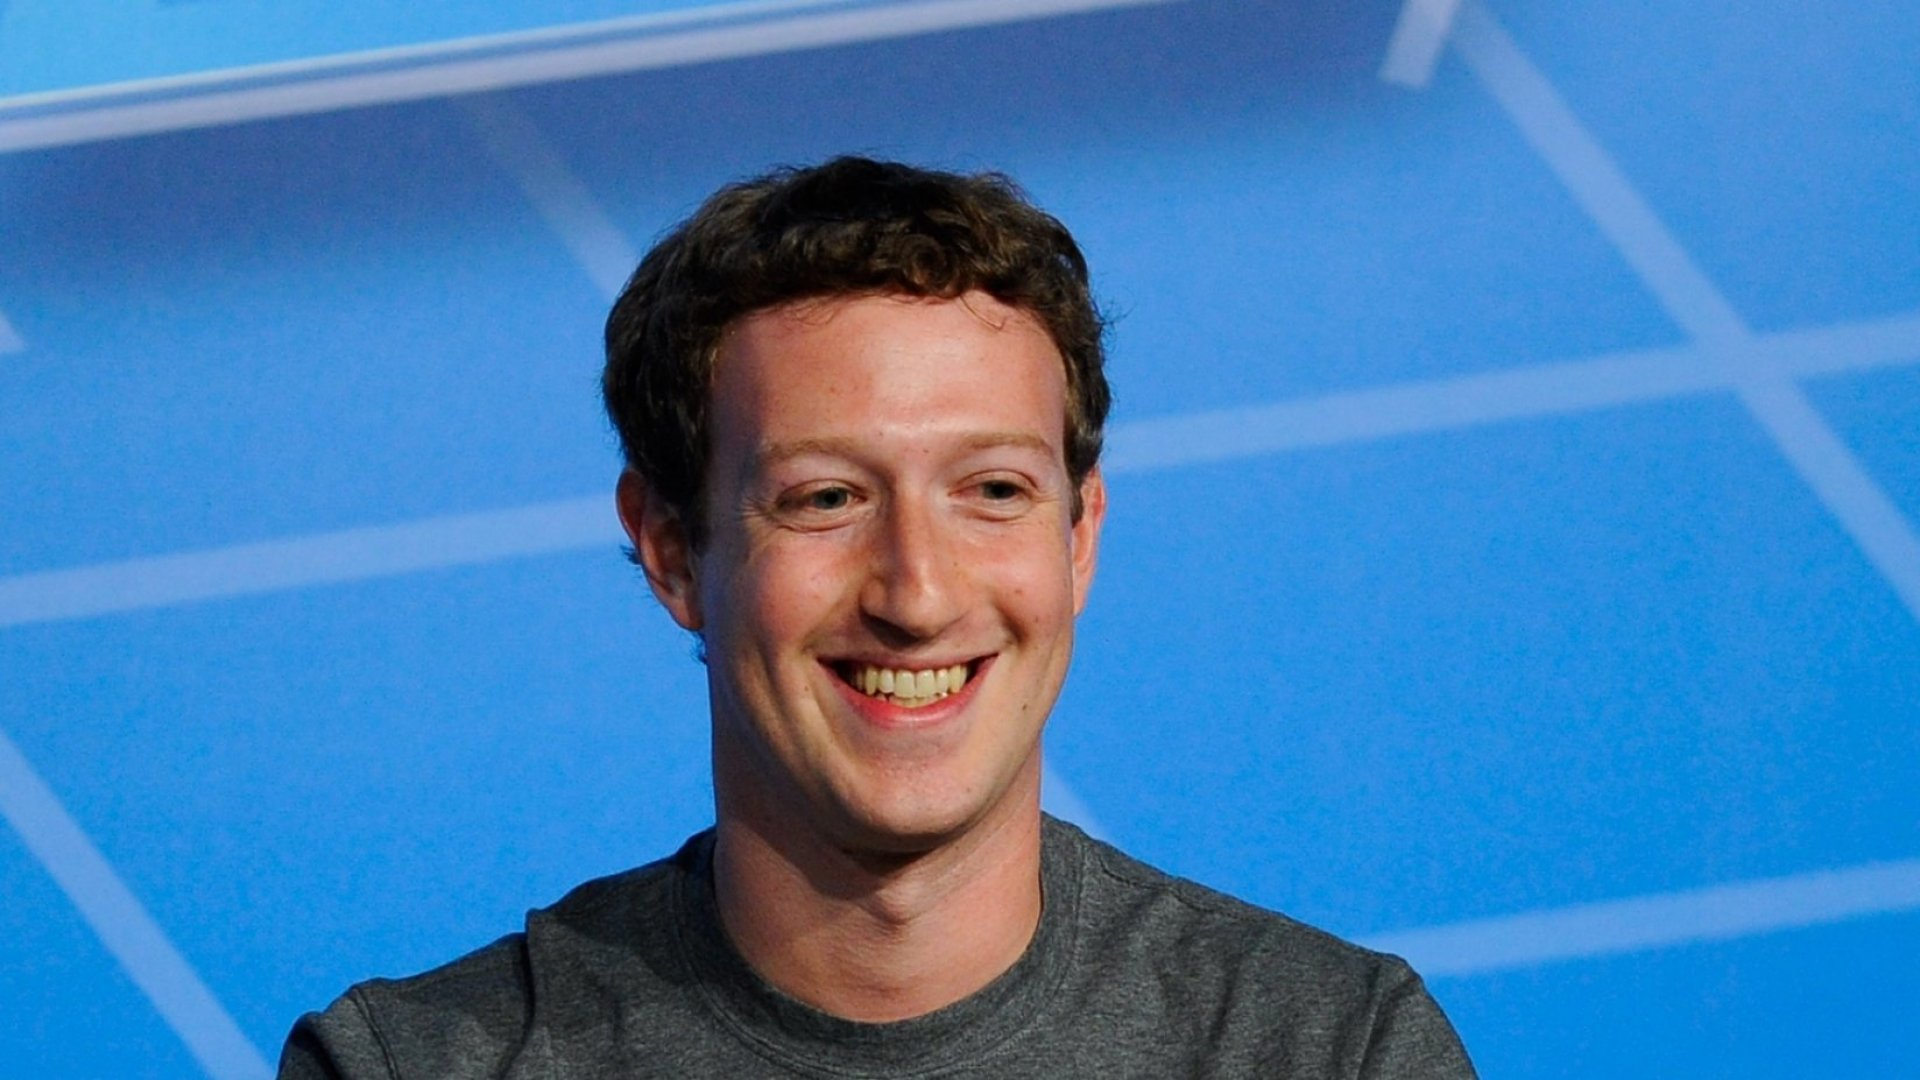 Billionaire College Dropout Mark Zuckerberg Will Finally Get a Diploma From Harvard